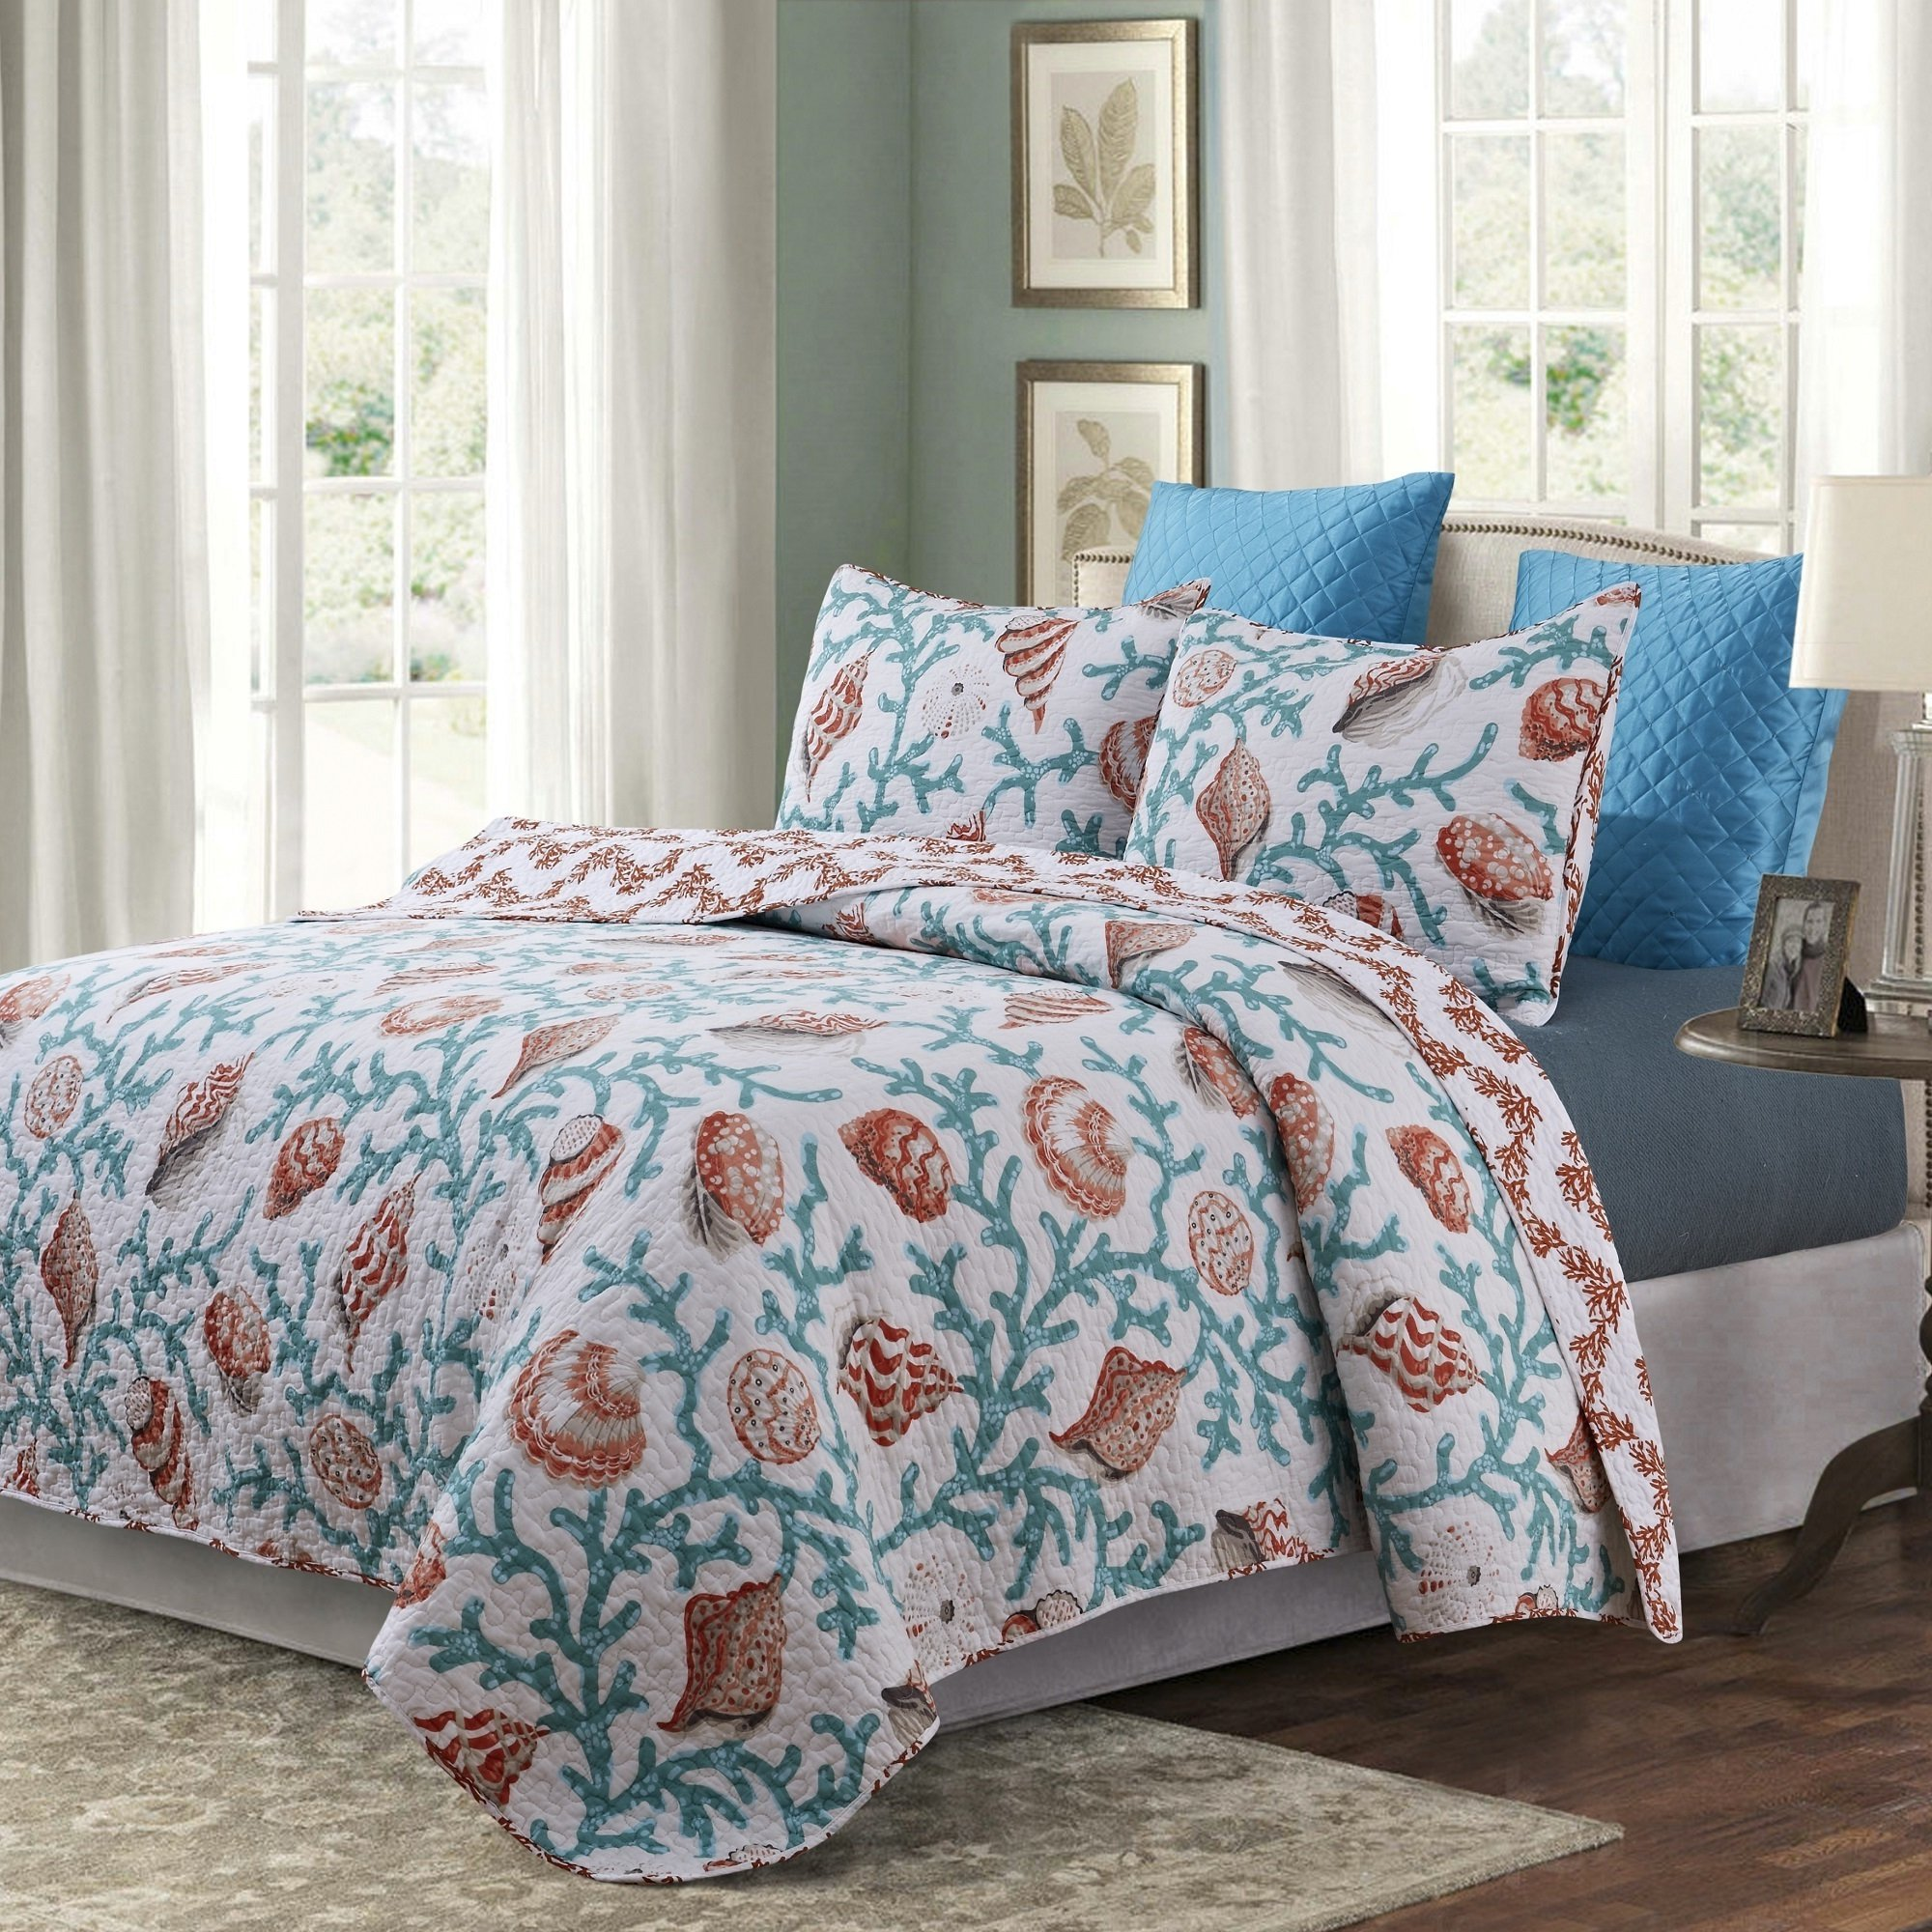 3 Piece Whimsical Underwater Creatures Theme Reversible Quilt Set Full/Queen Size, Coastal Sea Shells Corals Reefs Bedding, Modern Nautical Lovers Pattern, Beach Shoreline Animals Design, Teal, Coral